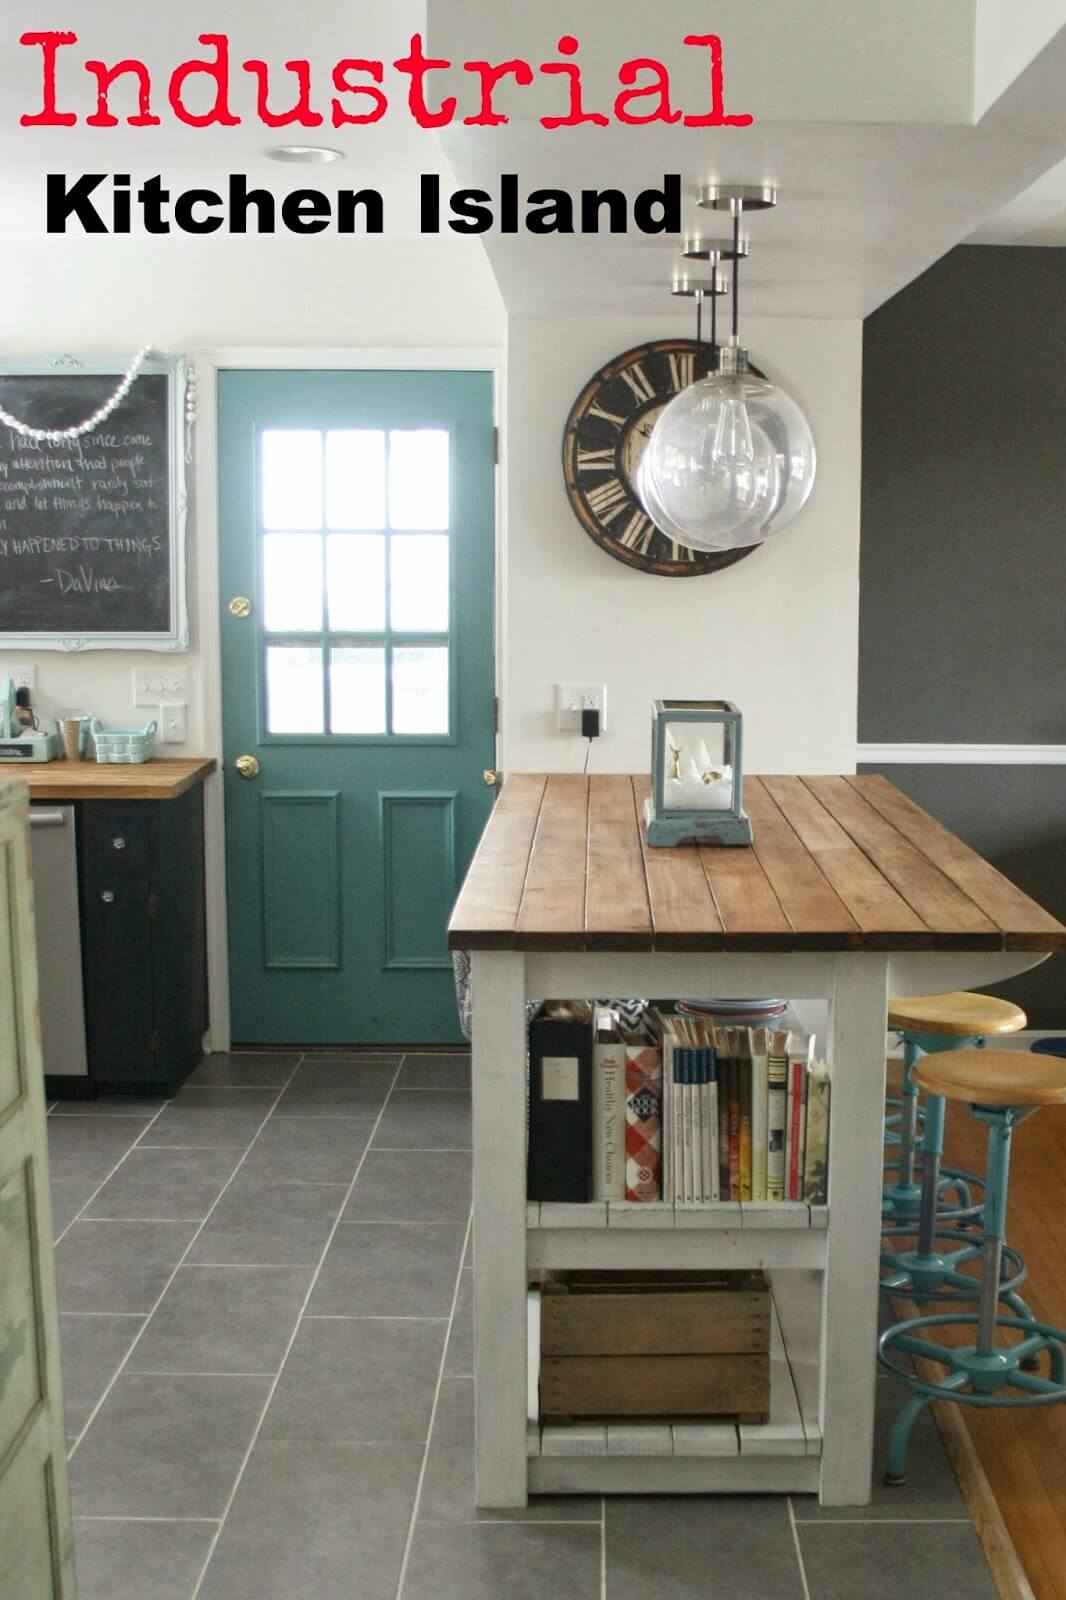 Kitchen Island DIY Special